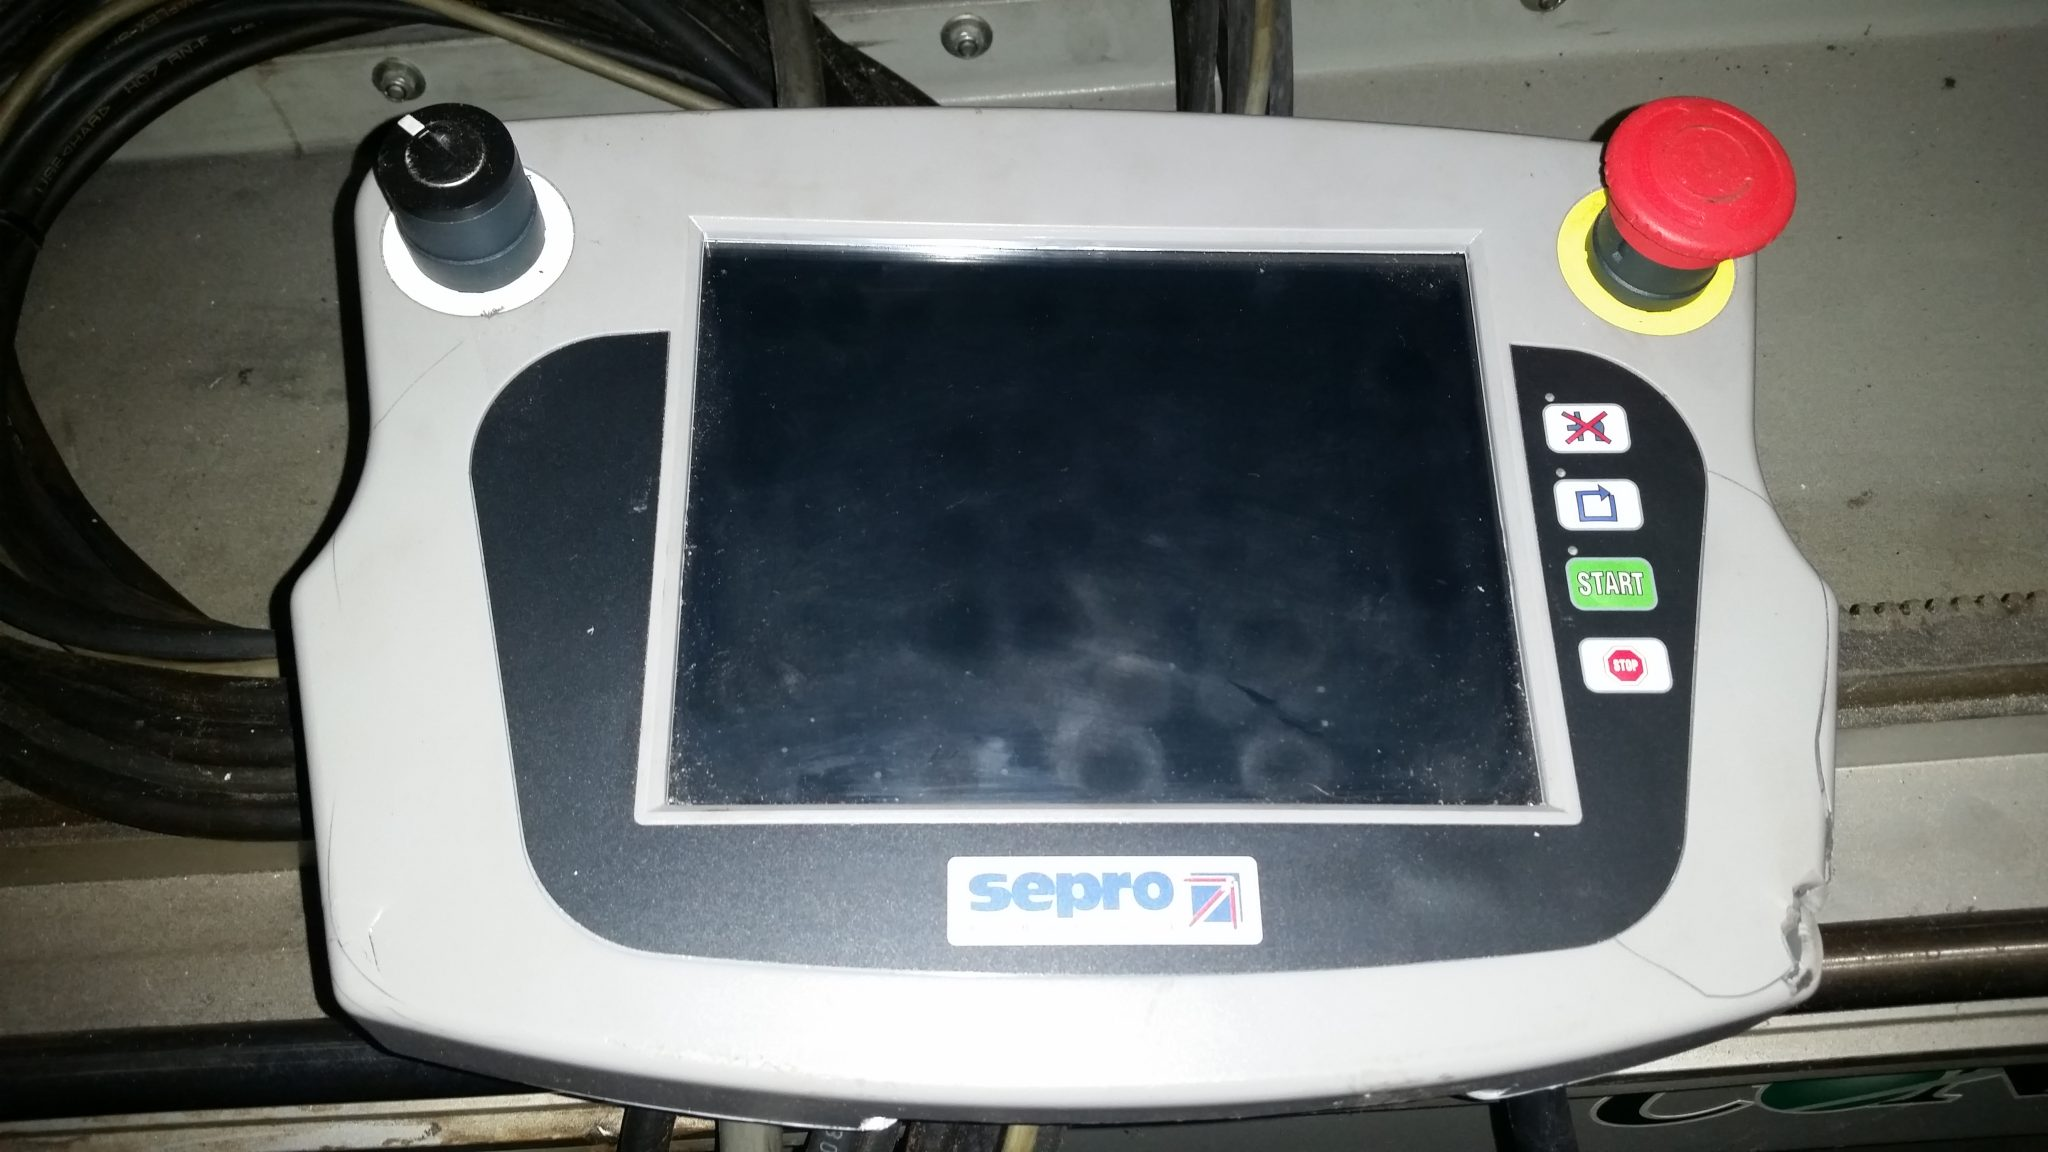 Sepro Plastic Injection Molding Machine Robot For Sale (2)